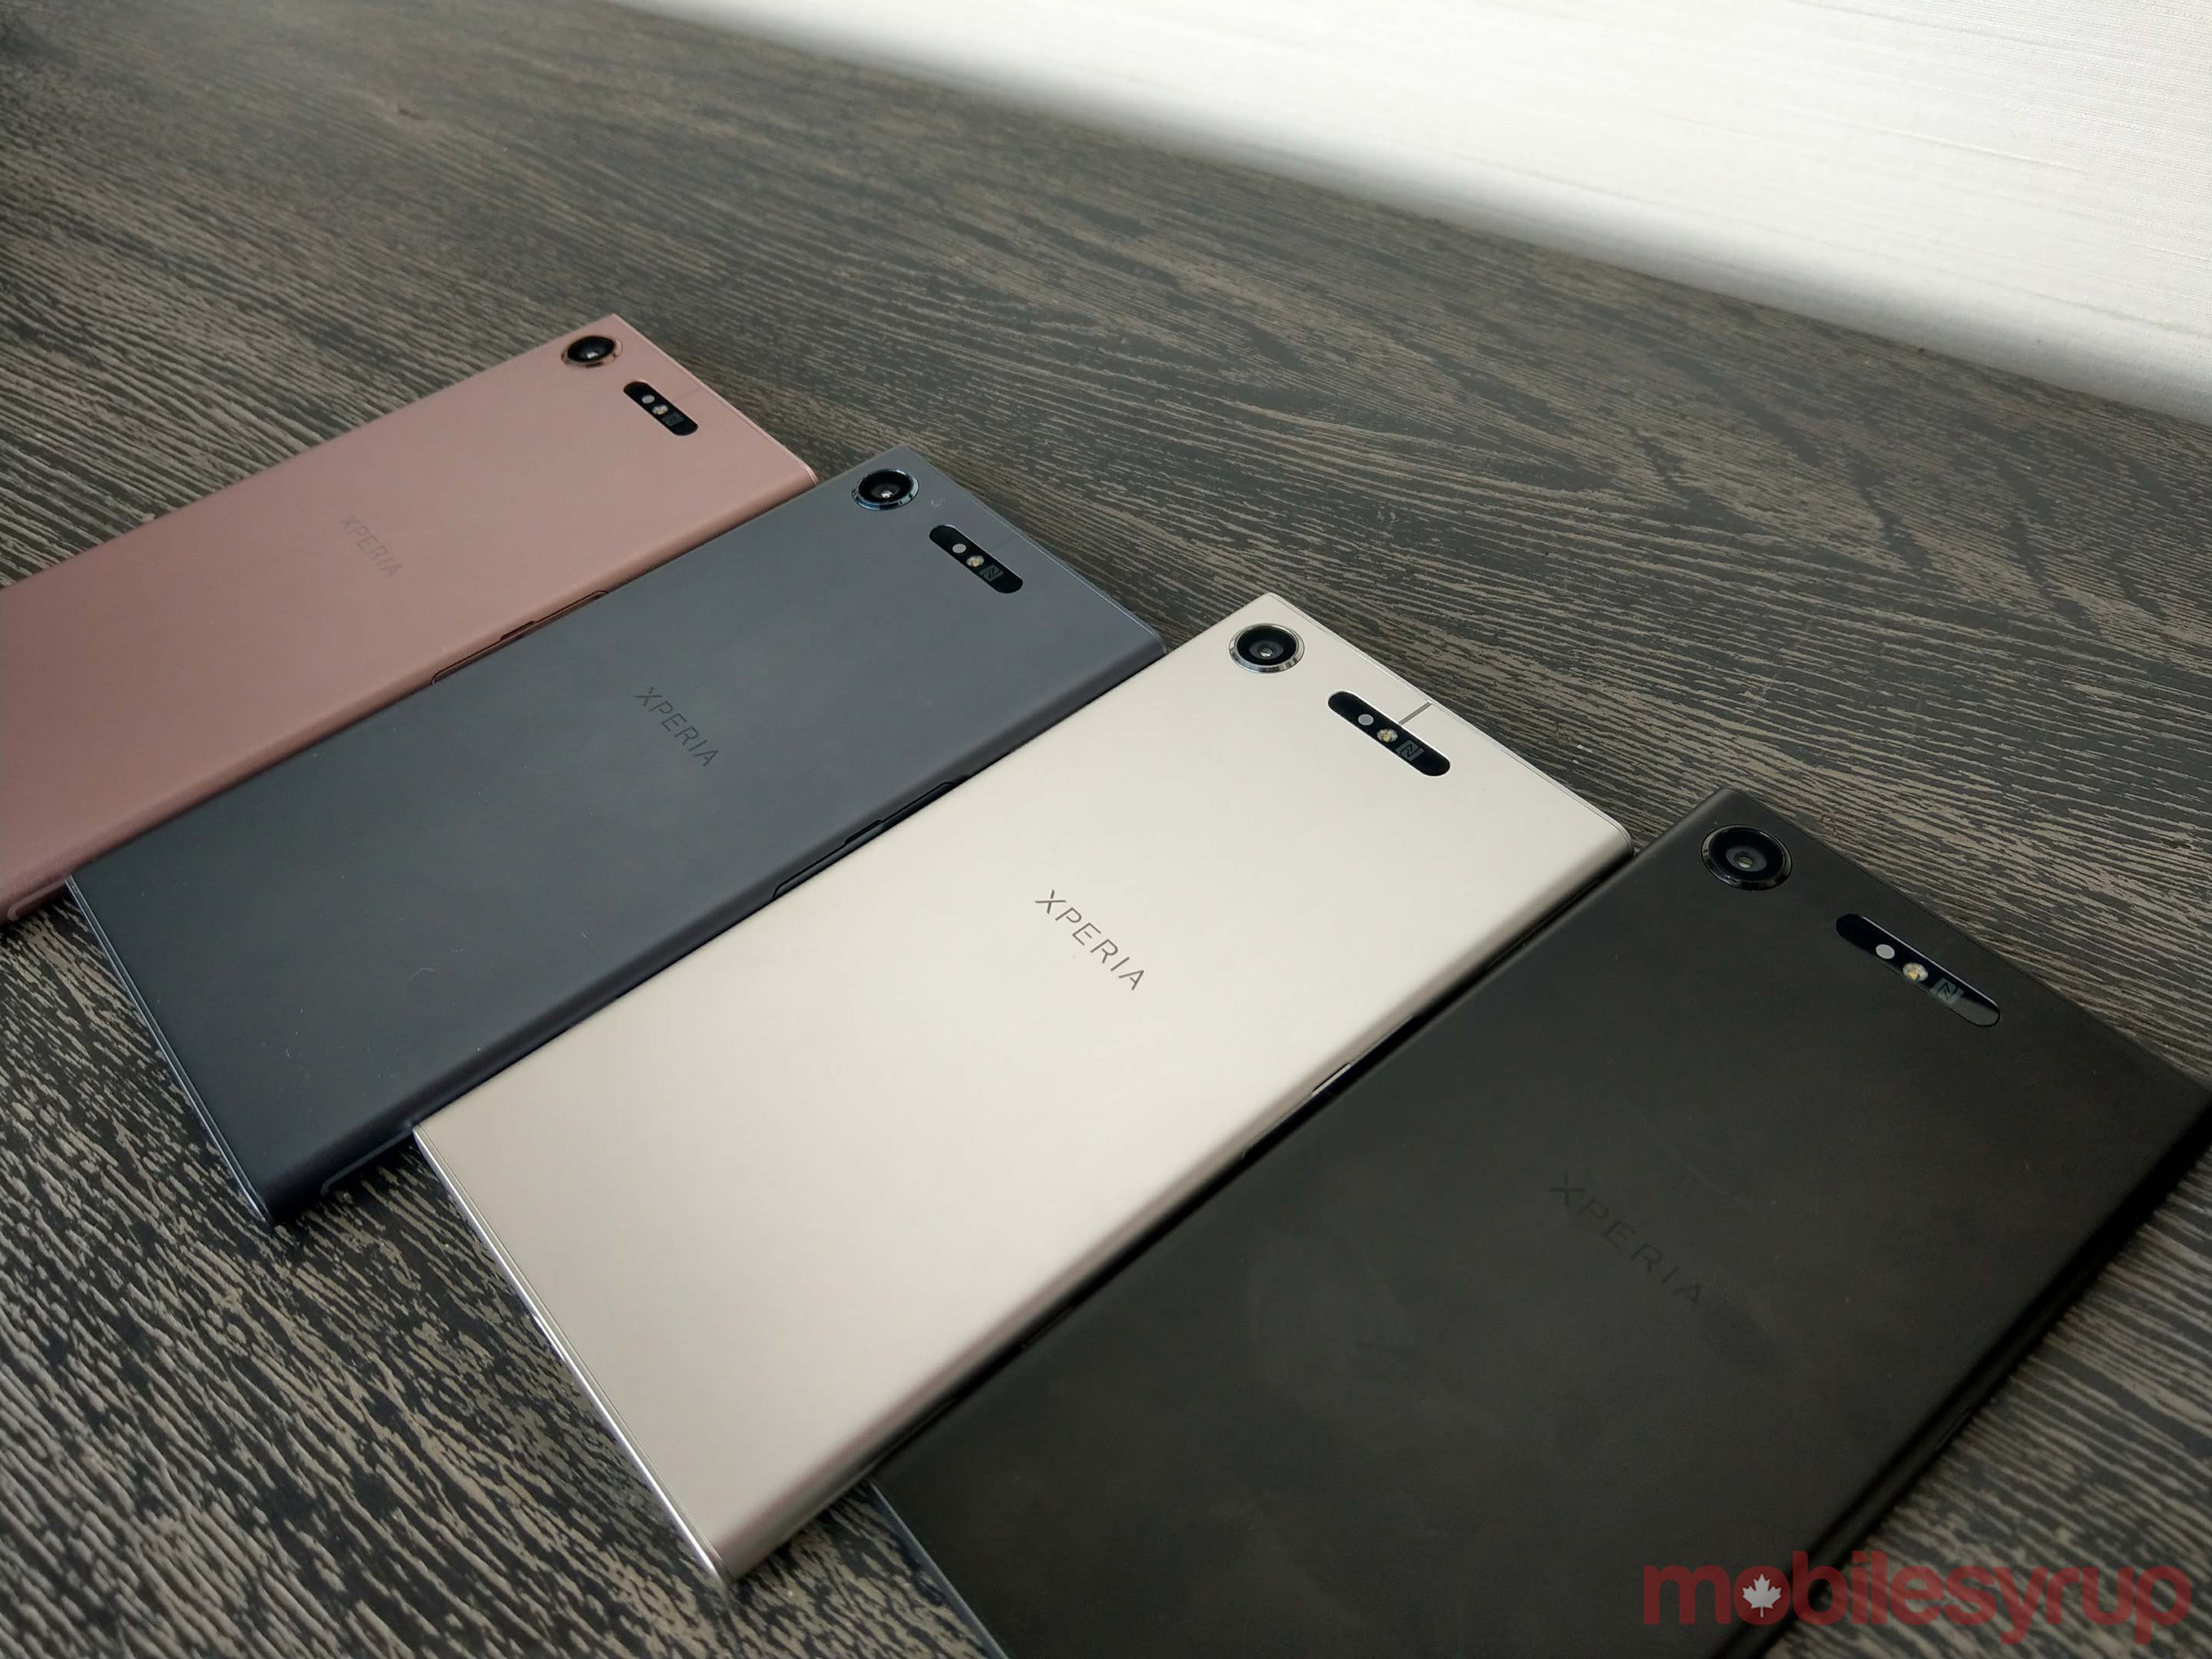 All of the XZ1's colours